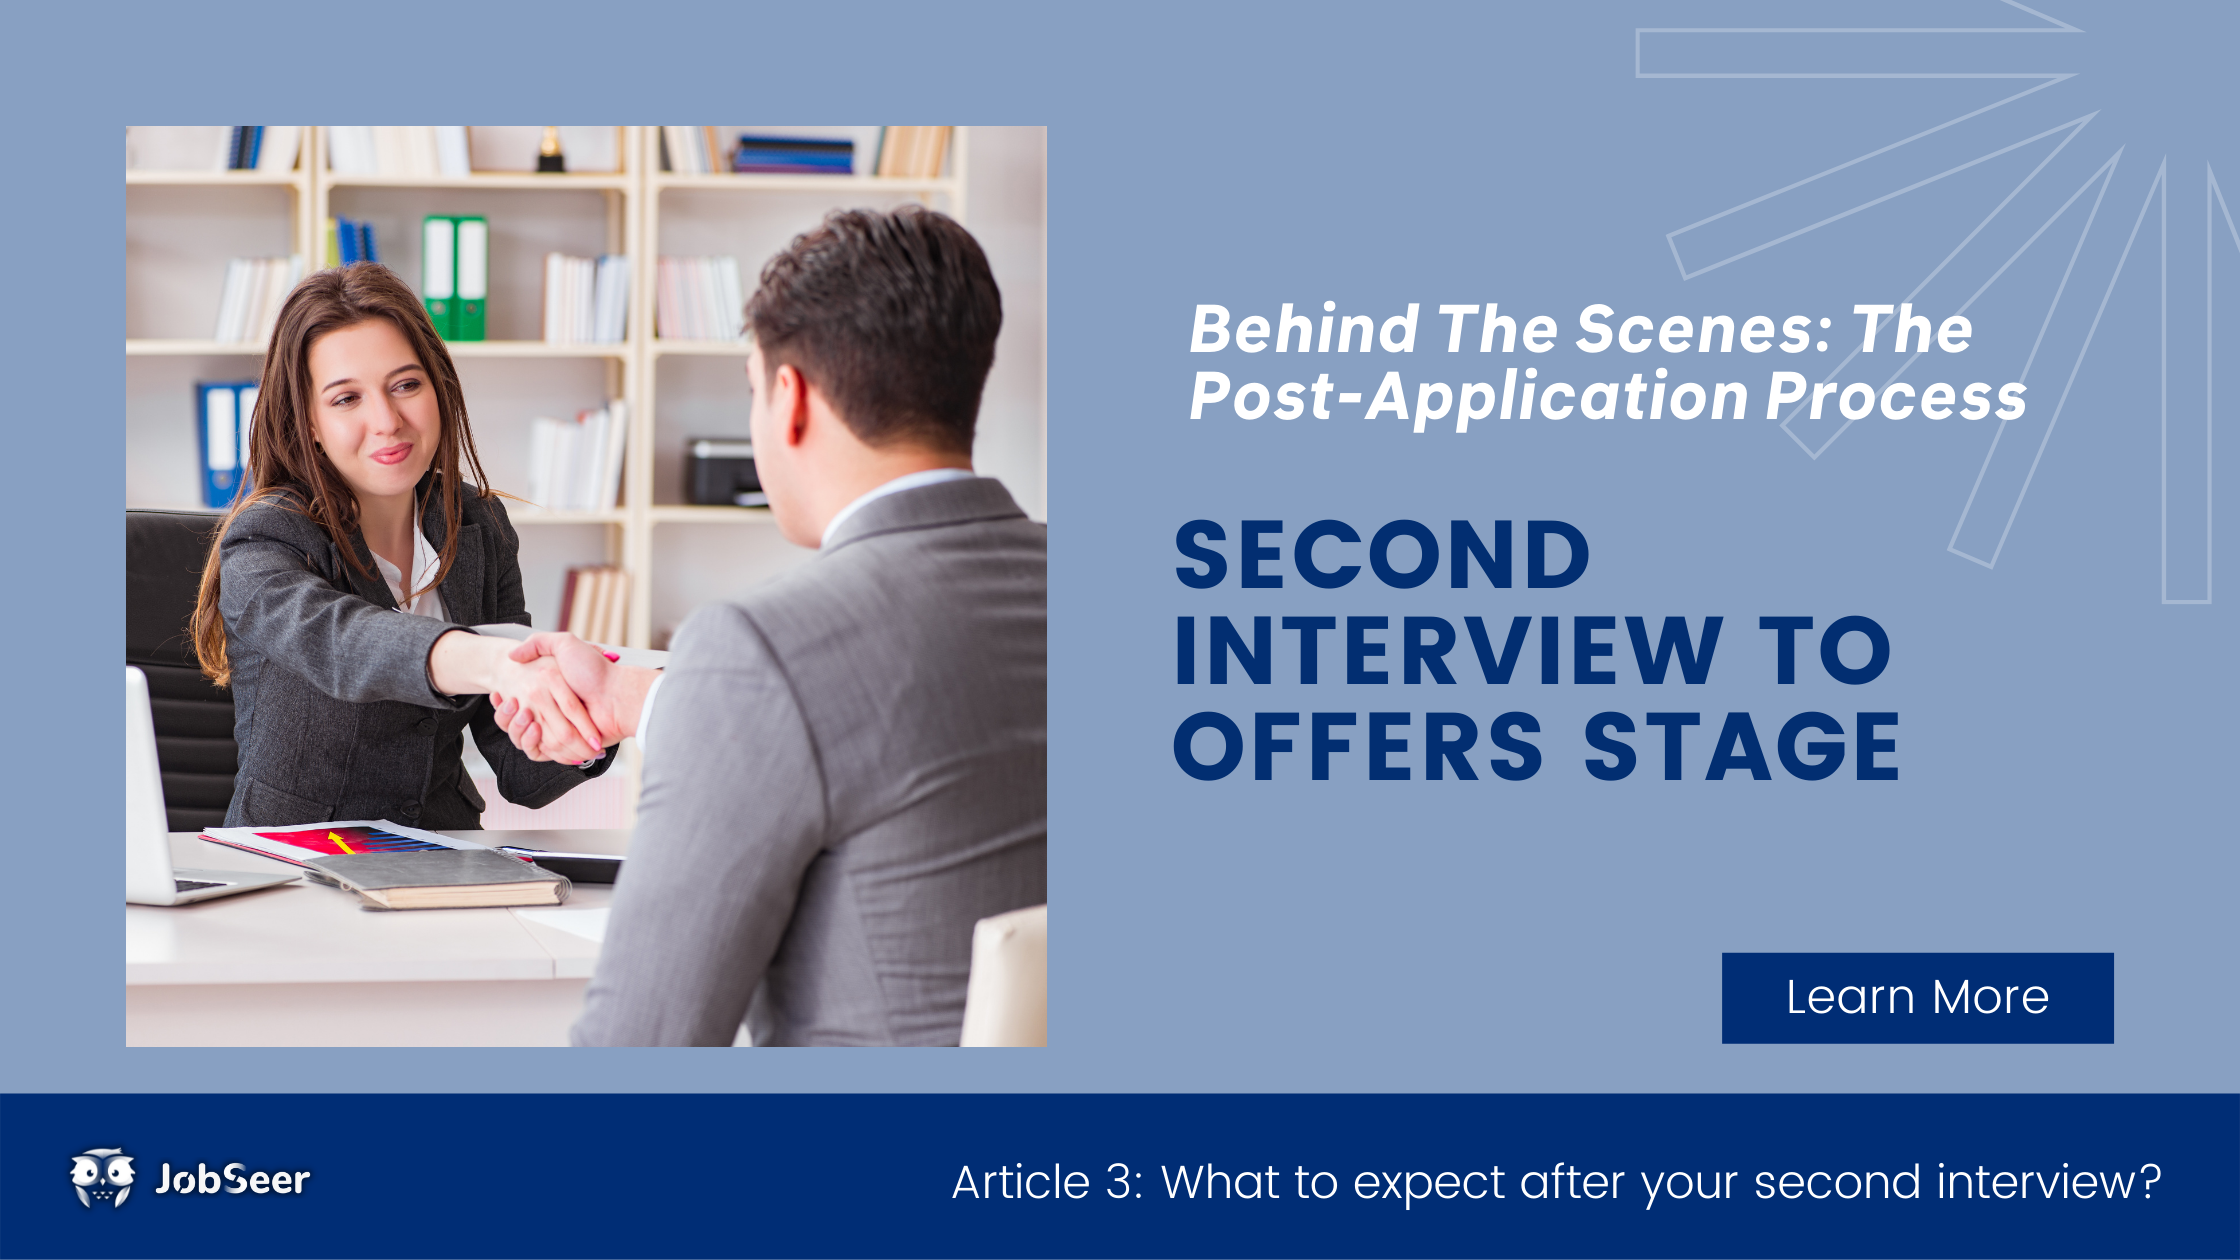 Behind the Scenes of the Post Application Process:Second Interview to Offer Stage